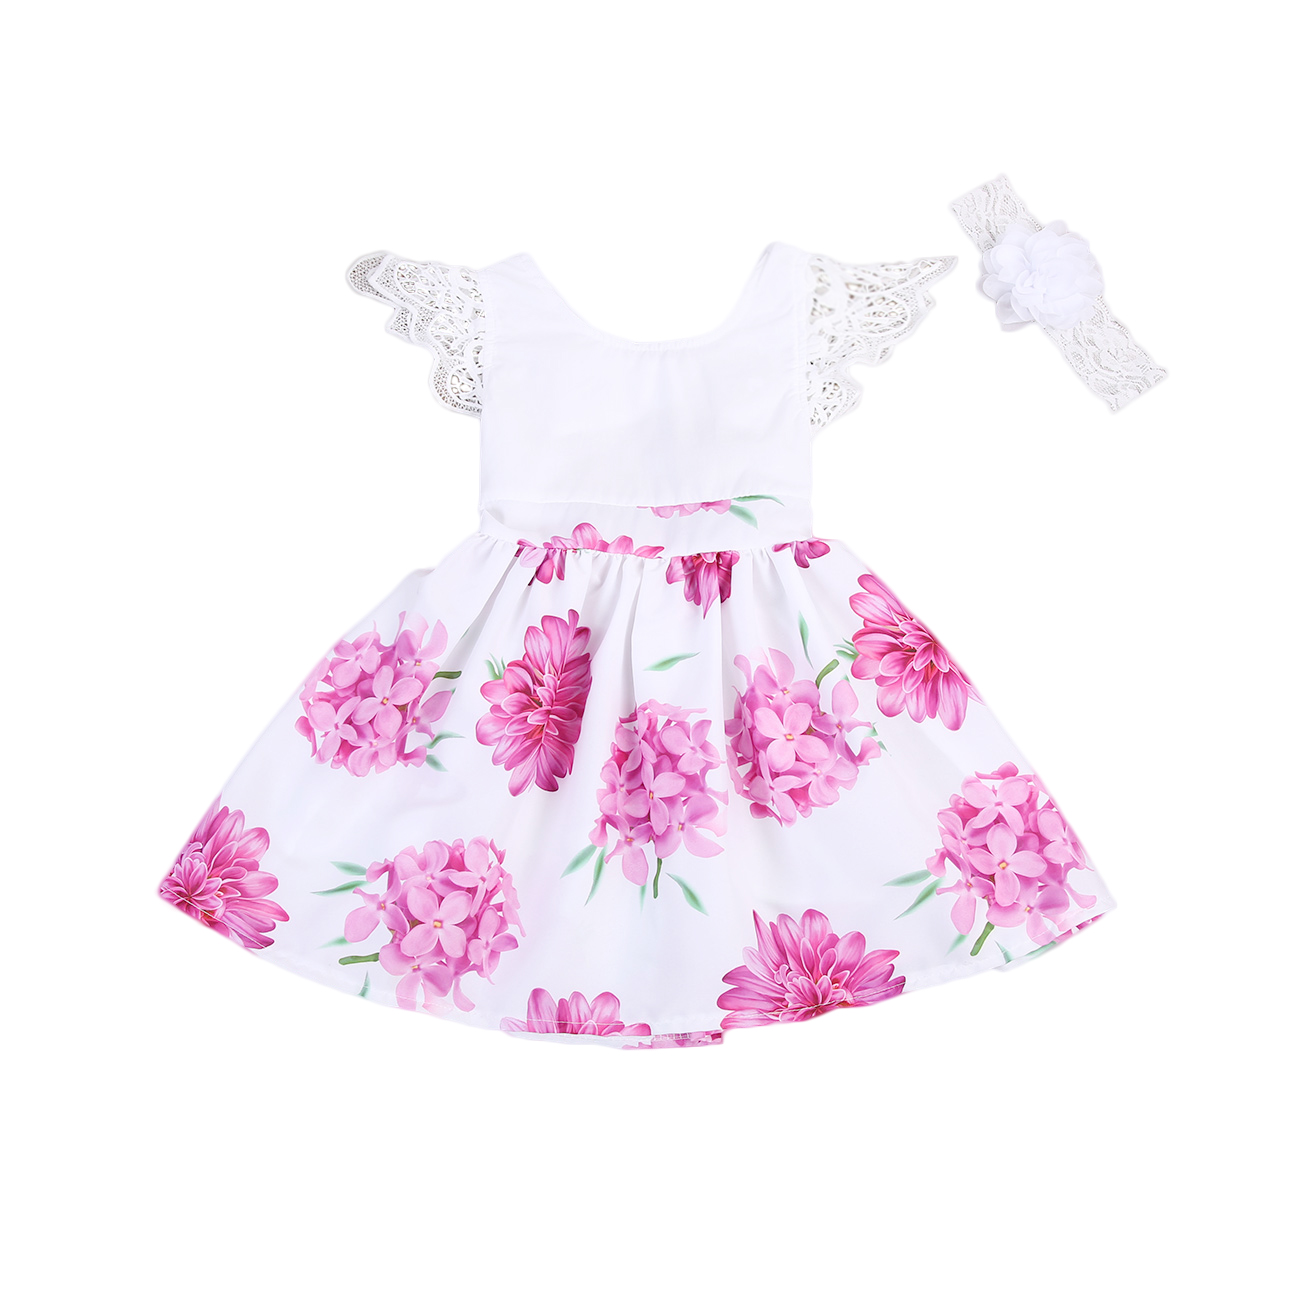 Kids Baby Girls Party Dress Clothing Sleeveless Lace Tulle Flower Gown Cute Mini New Dresses Girls Sundress 1-6Y ems dhl free 2017 new lace tulle baby girls kids sleeveless party dress holiday children summer style baby dress valentine